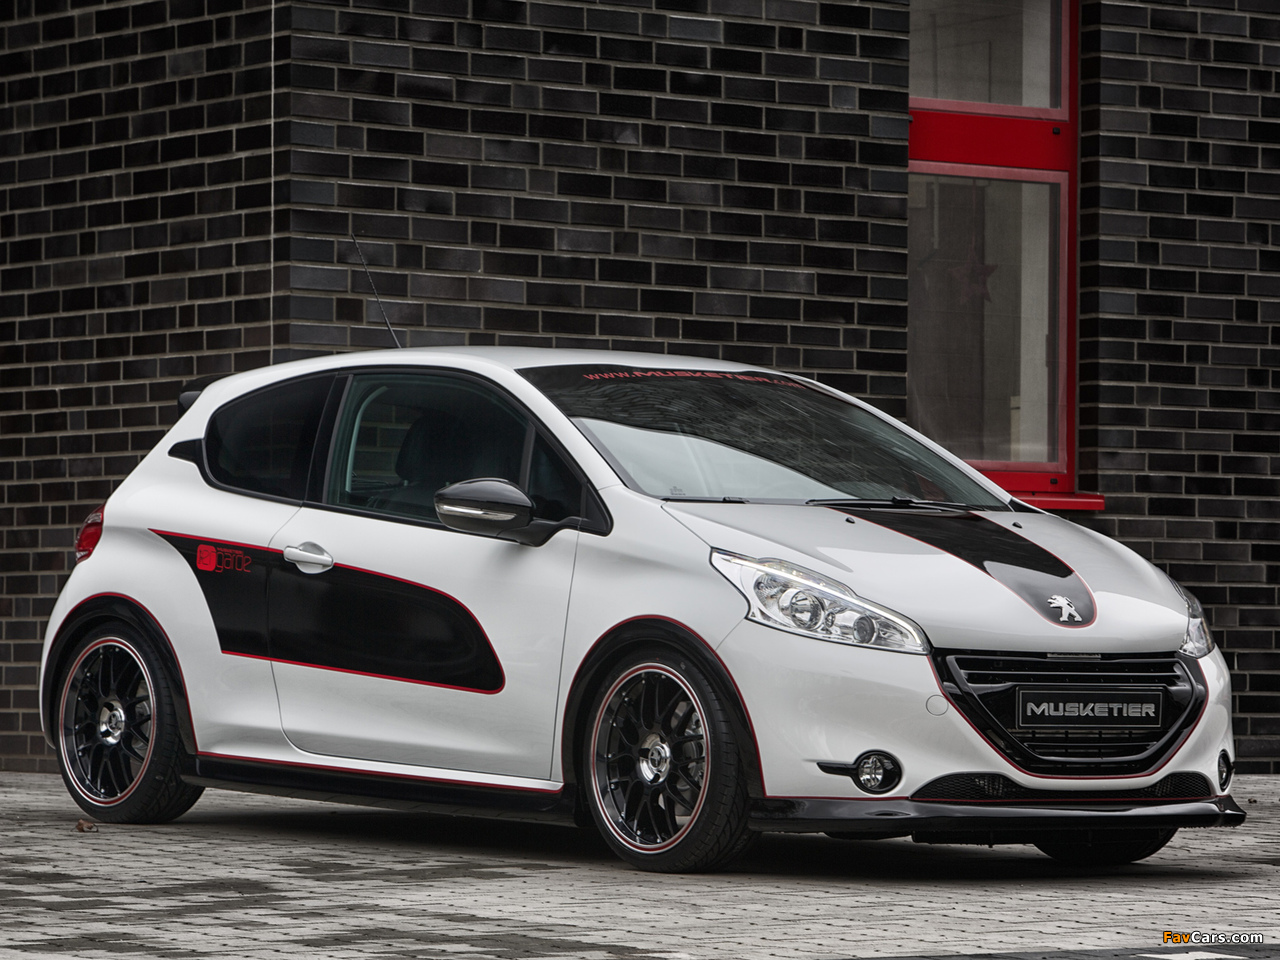 Images of Musketier Peugeot 208 Engarde 2013 (1280 x 960)